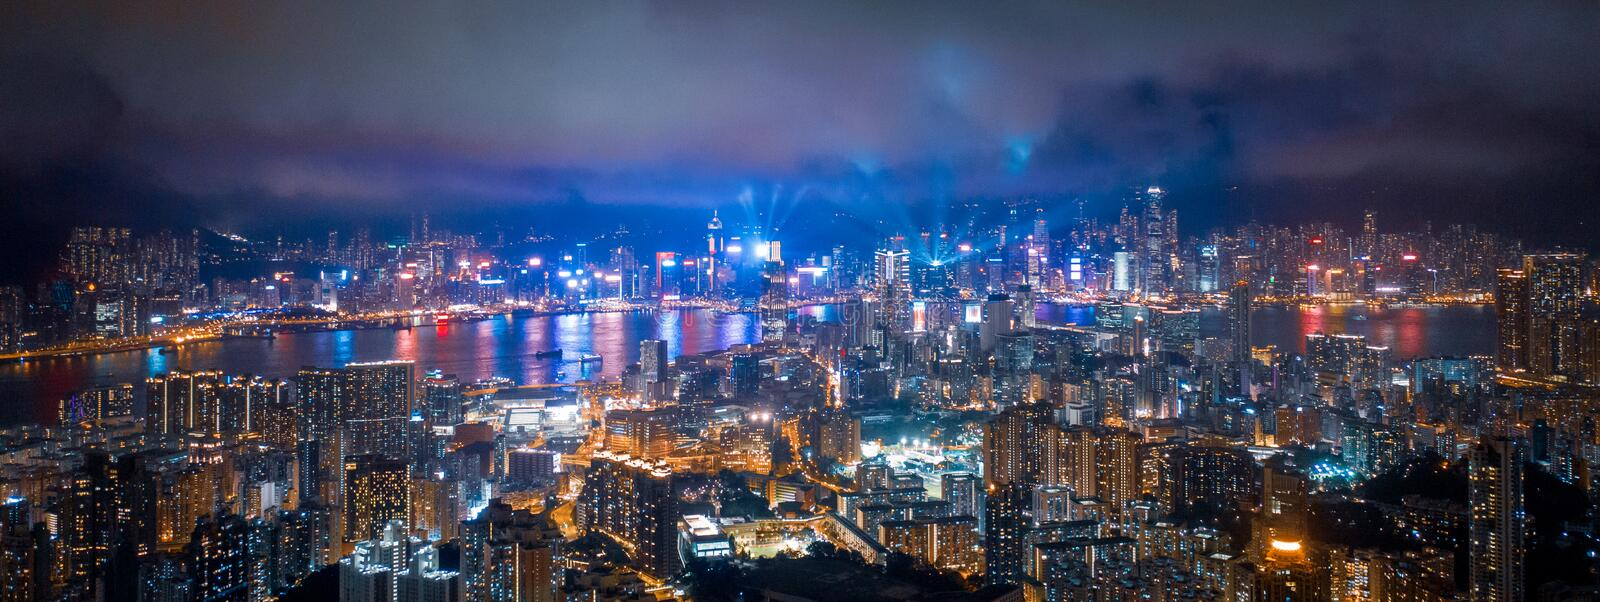 Night of victoria harbor, Hong Kong. Sparking light around the city stock photos